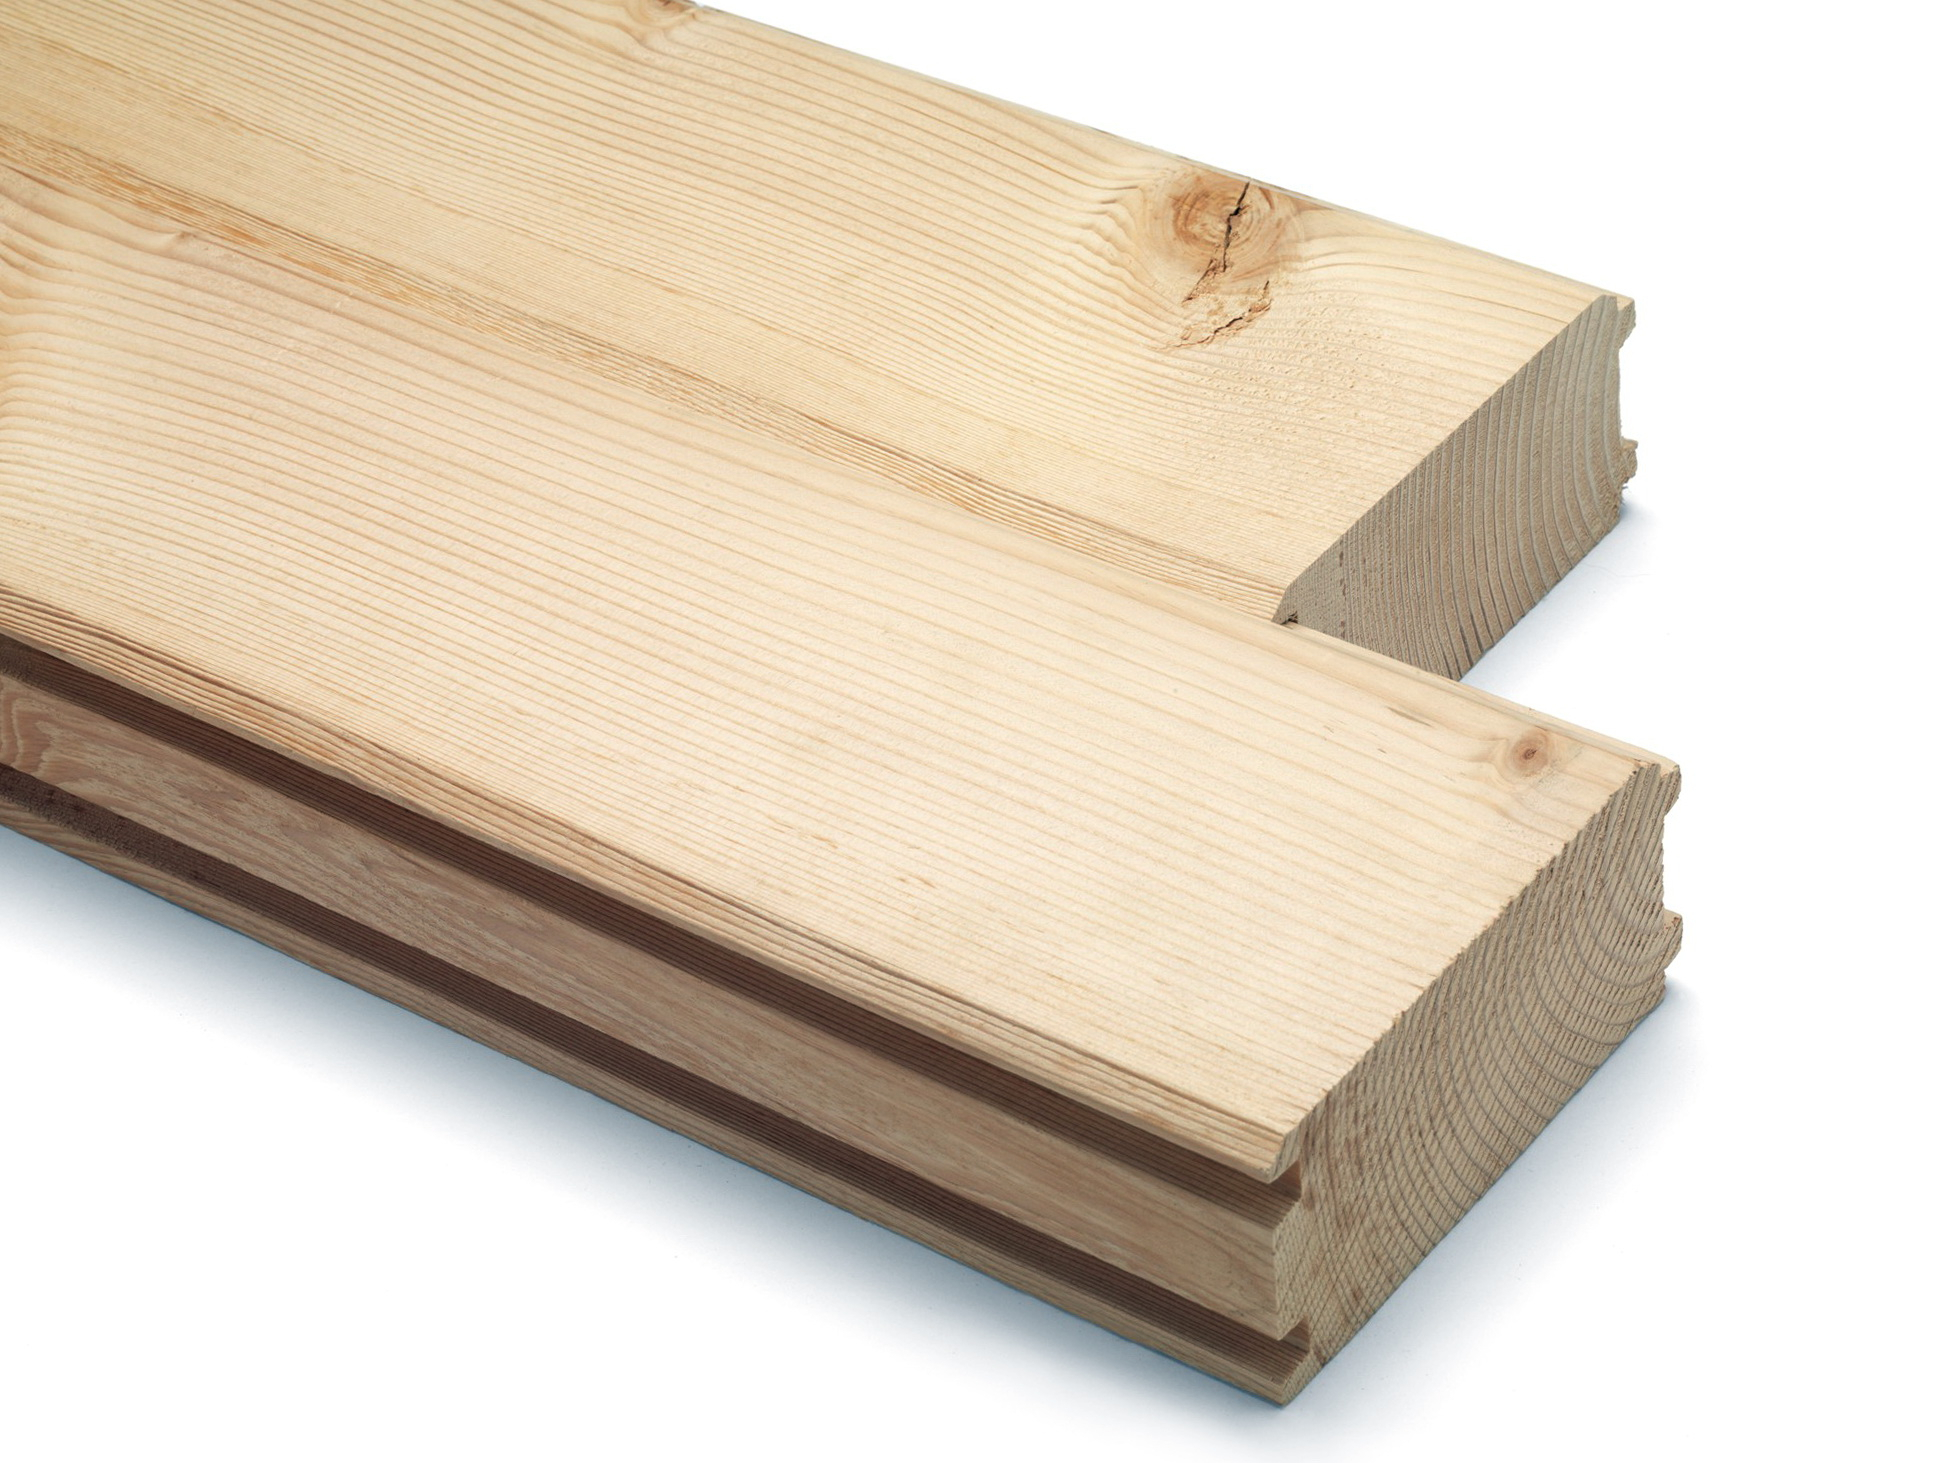 2x6 Tongue And Groove Roof Decking Span Decks Ideas